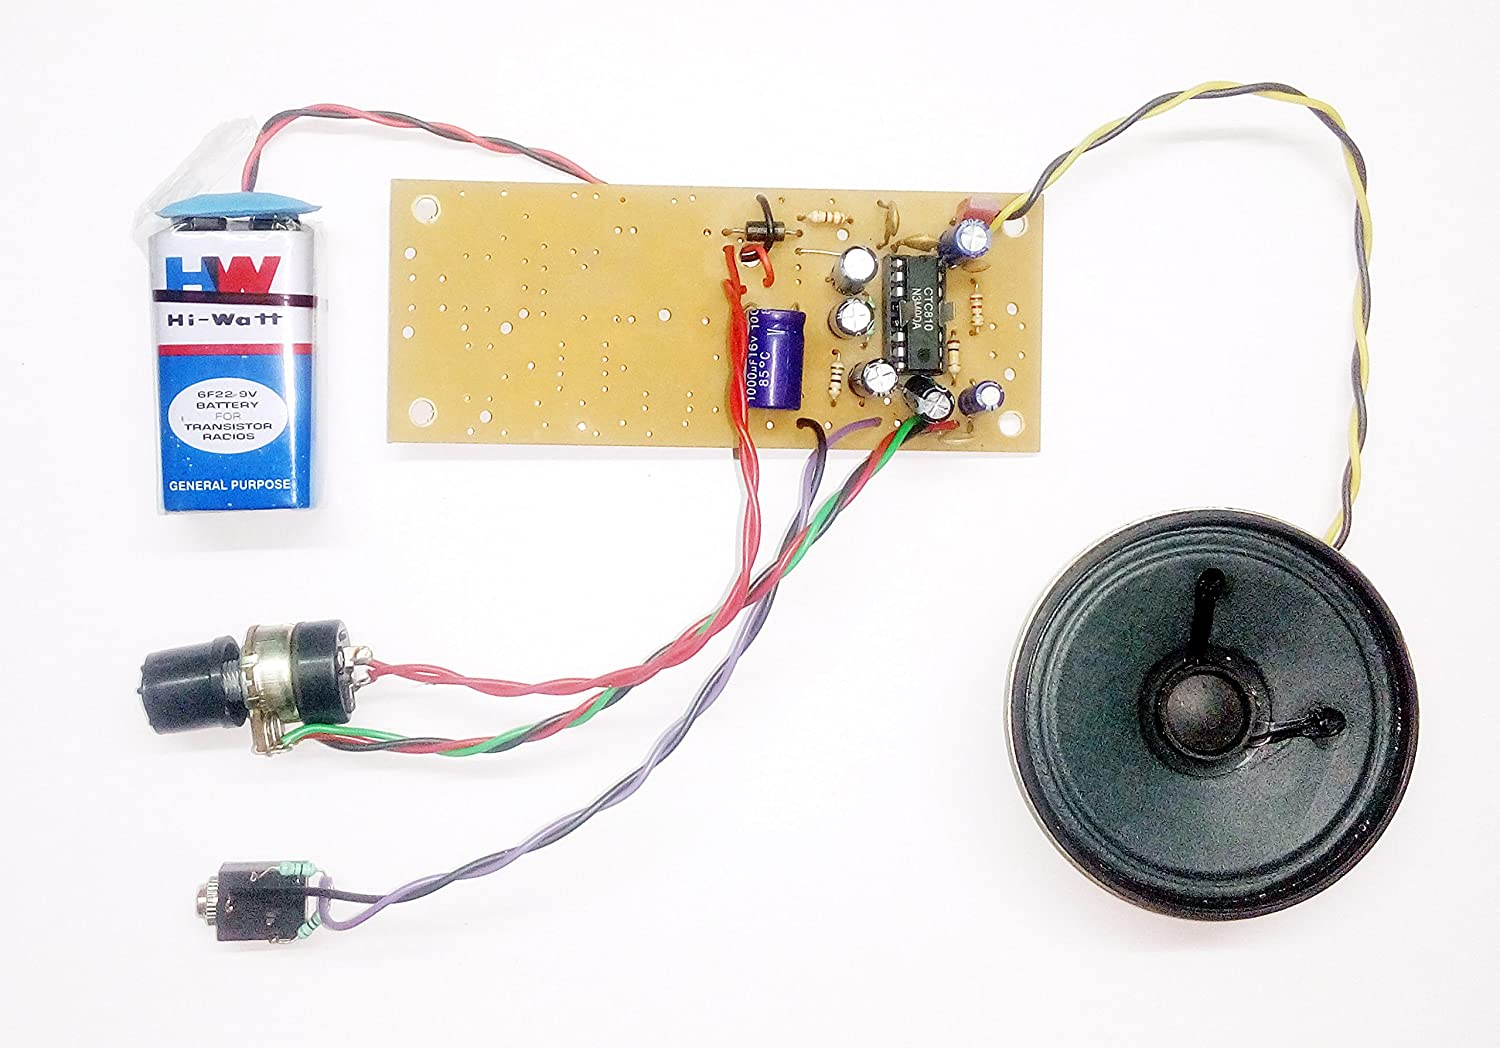 Pke 810 Ic Amplifier Circuit Stk4050 Audio With 200w Output